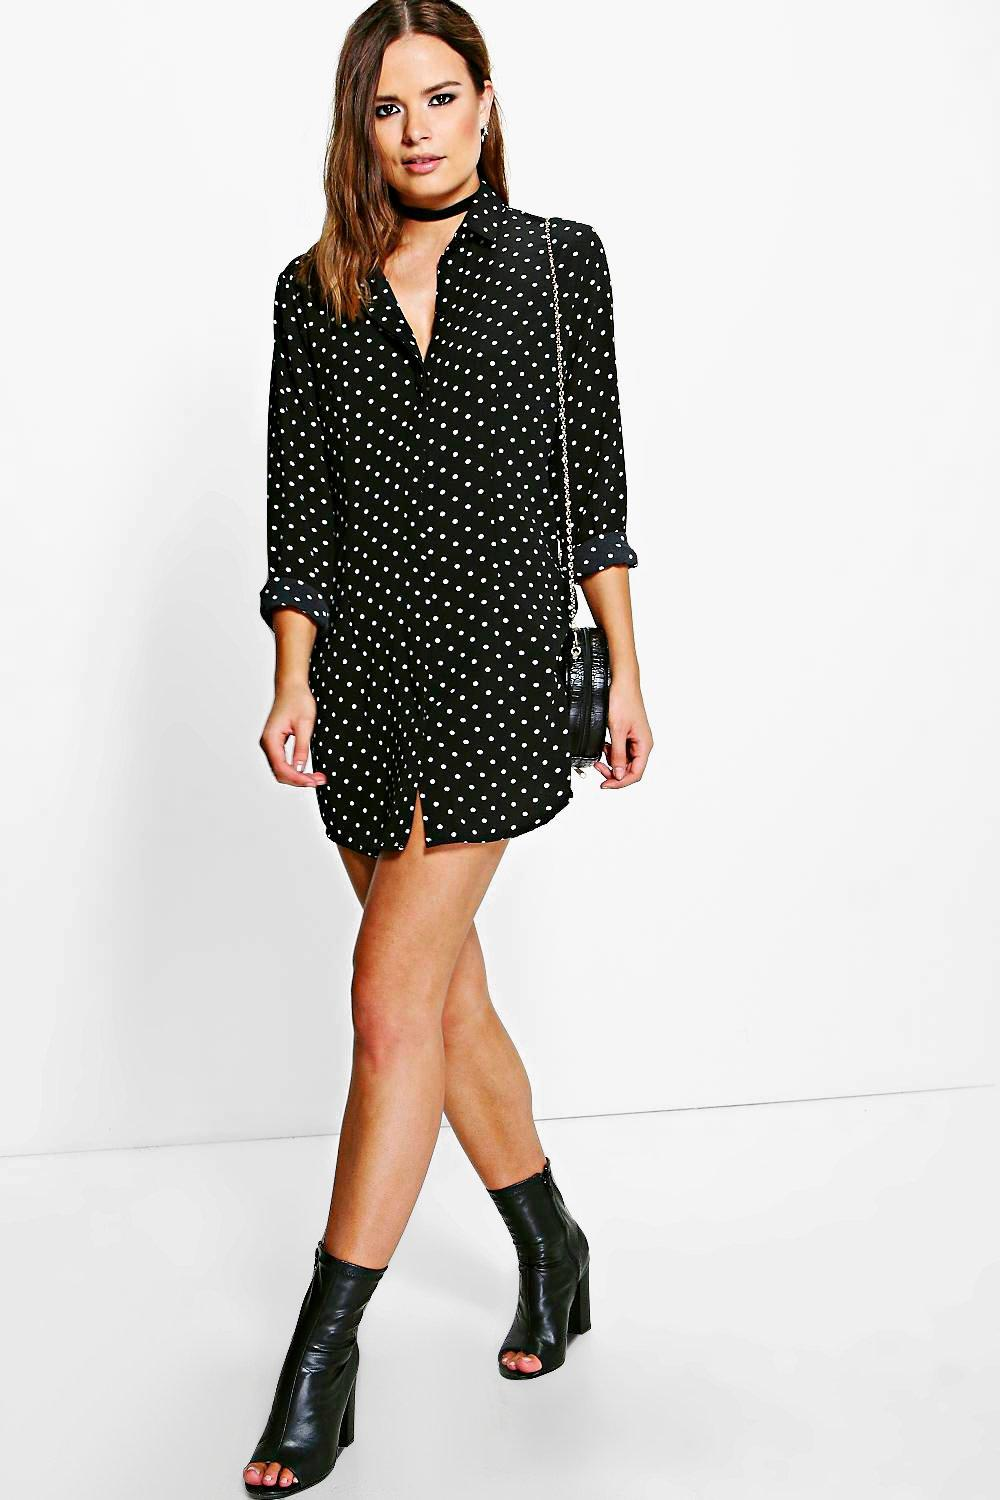 Barley Polka Dot Shirt Dress